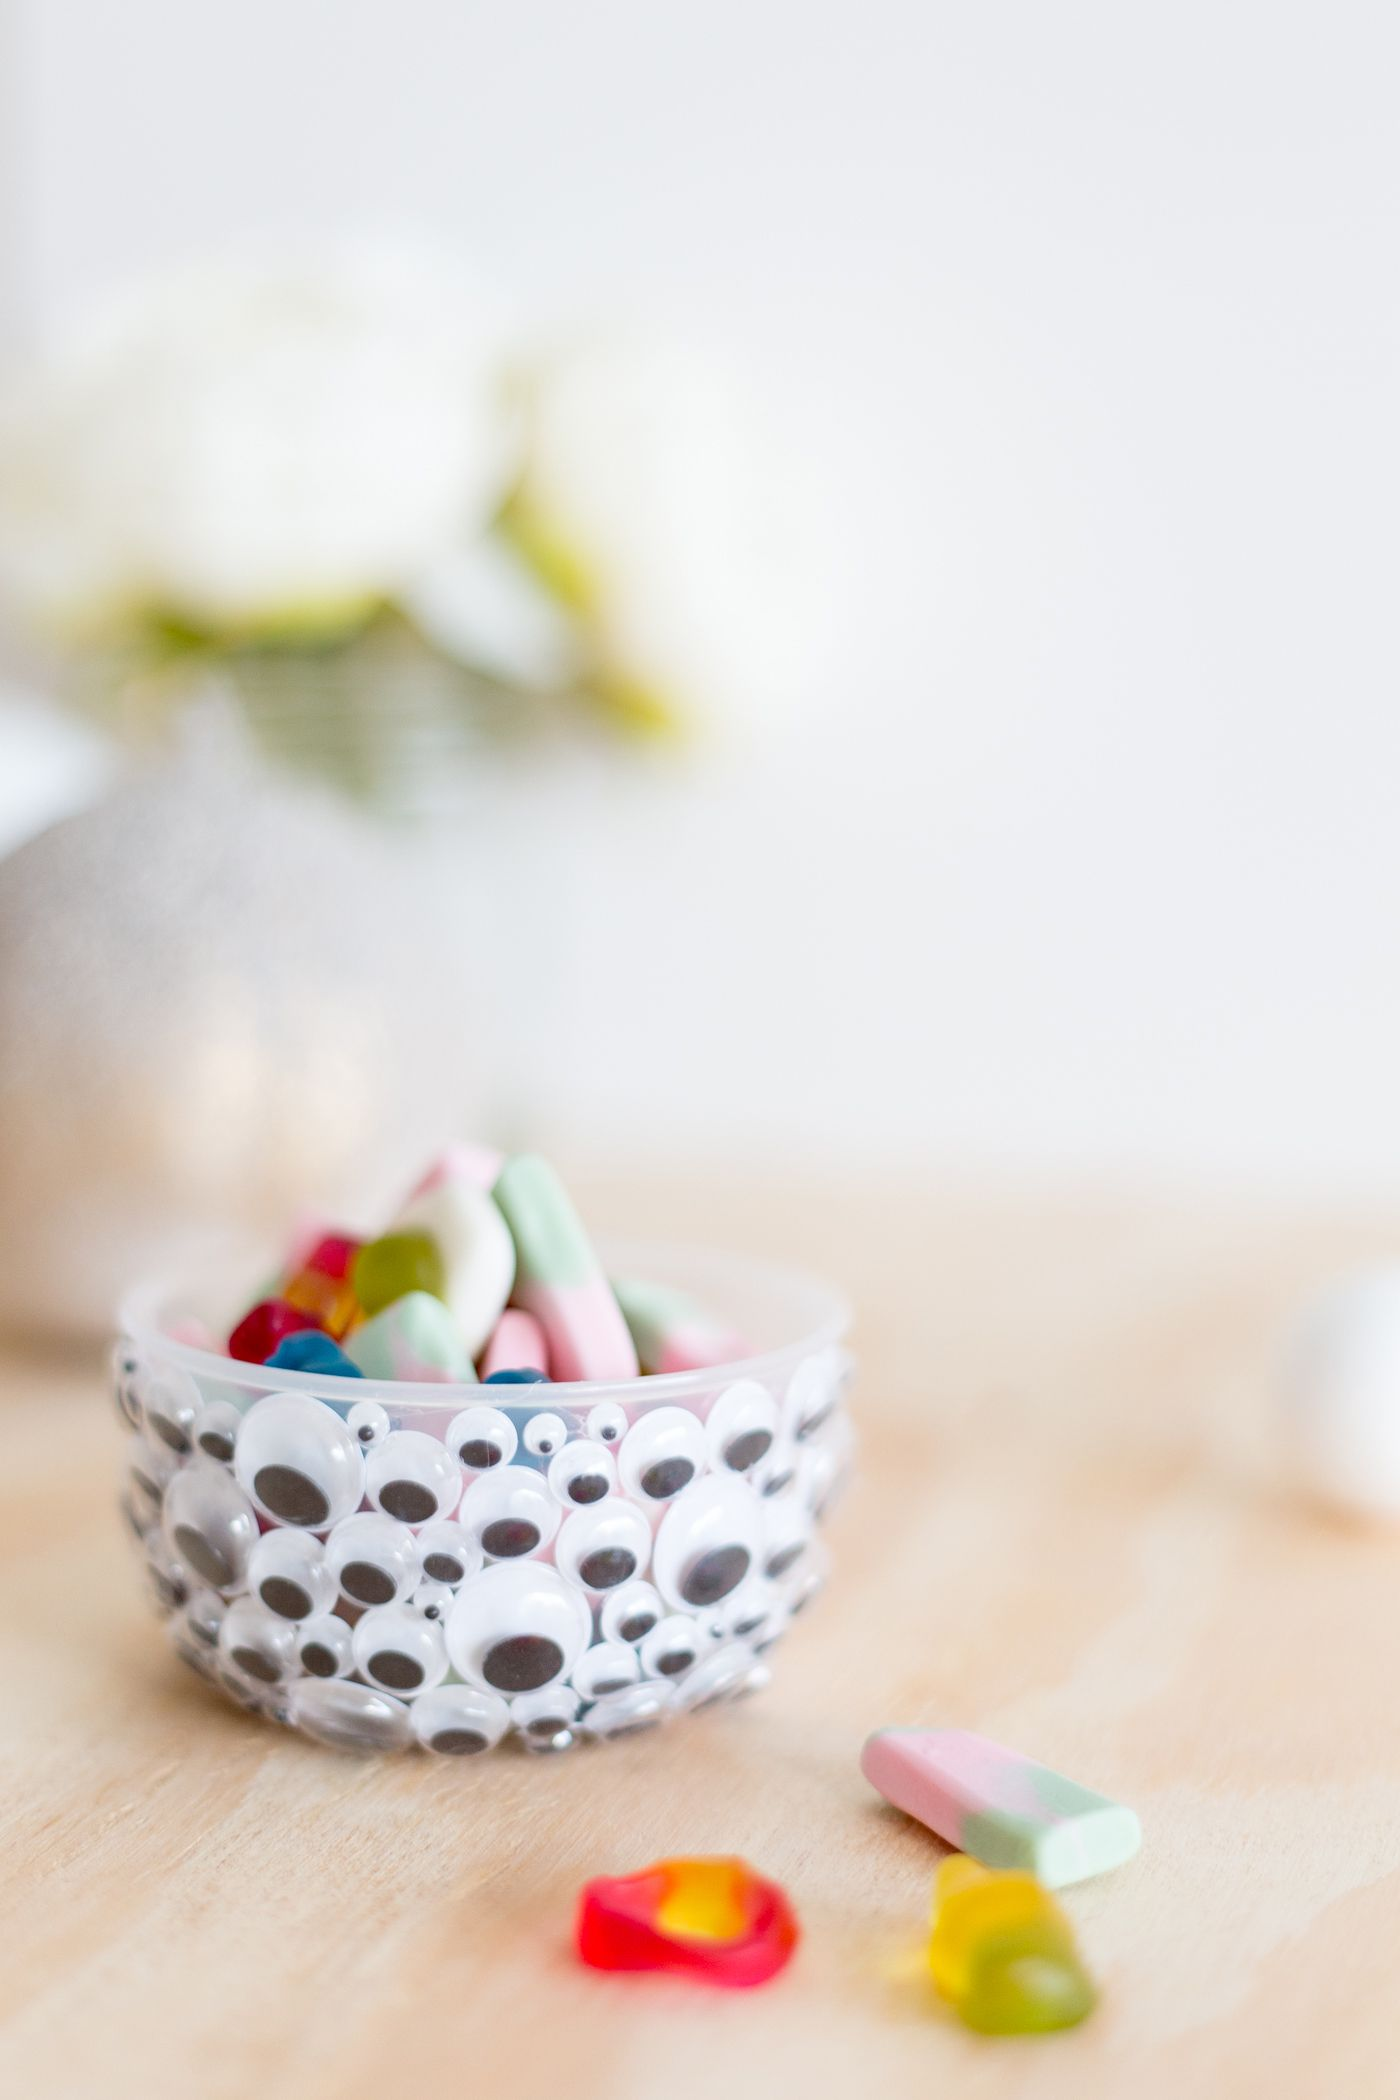 A bowl covered with googly eyes